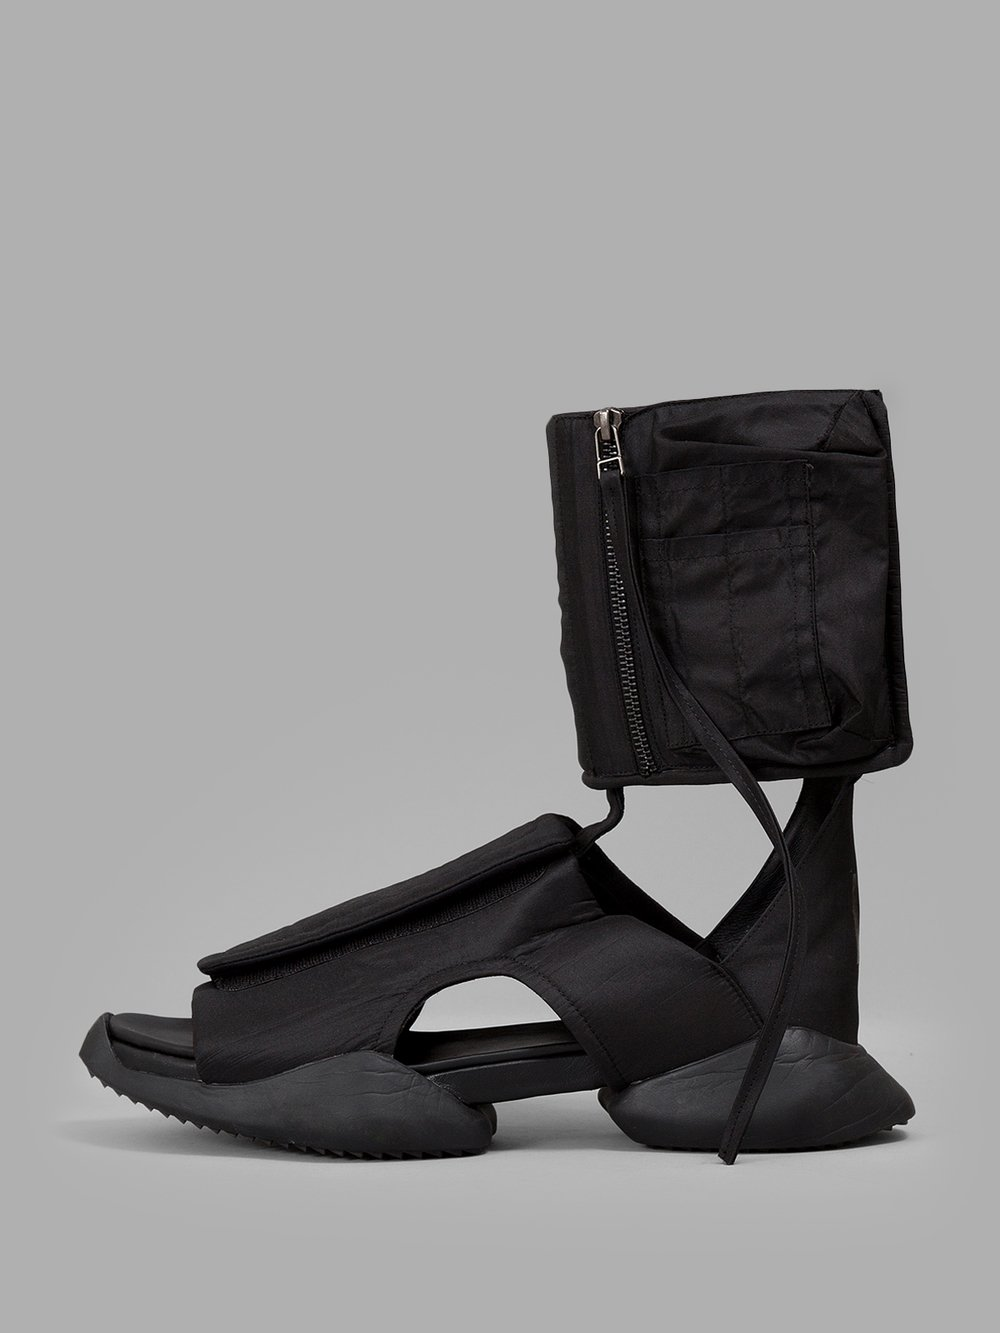 Rick Owens Sandals RM16S3822NYAB 99 8aec95200